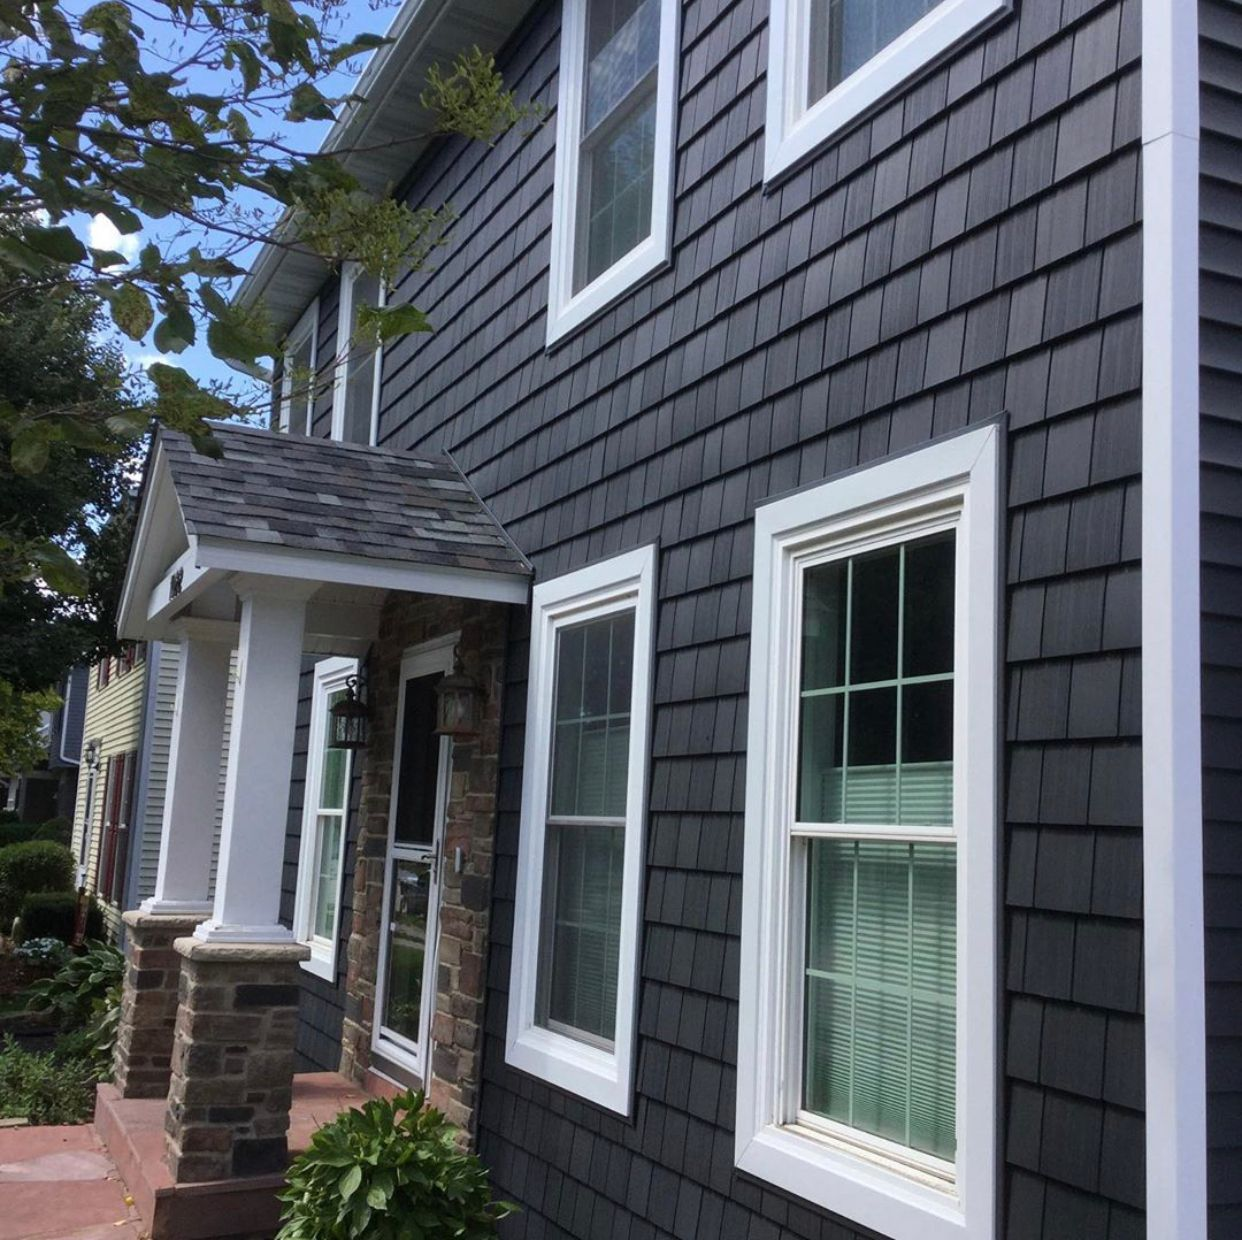 Whether You Re Looking For Bold Accents Or Full Wrap Around Application Foundrysiding In Shakes S Shingle Exterior Ranch House Exterior Vinyl Shingle Siding